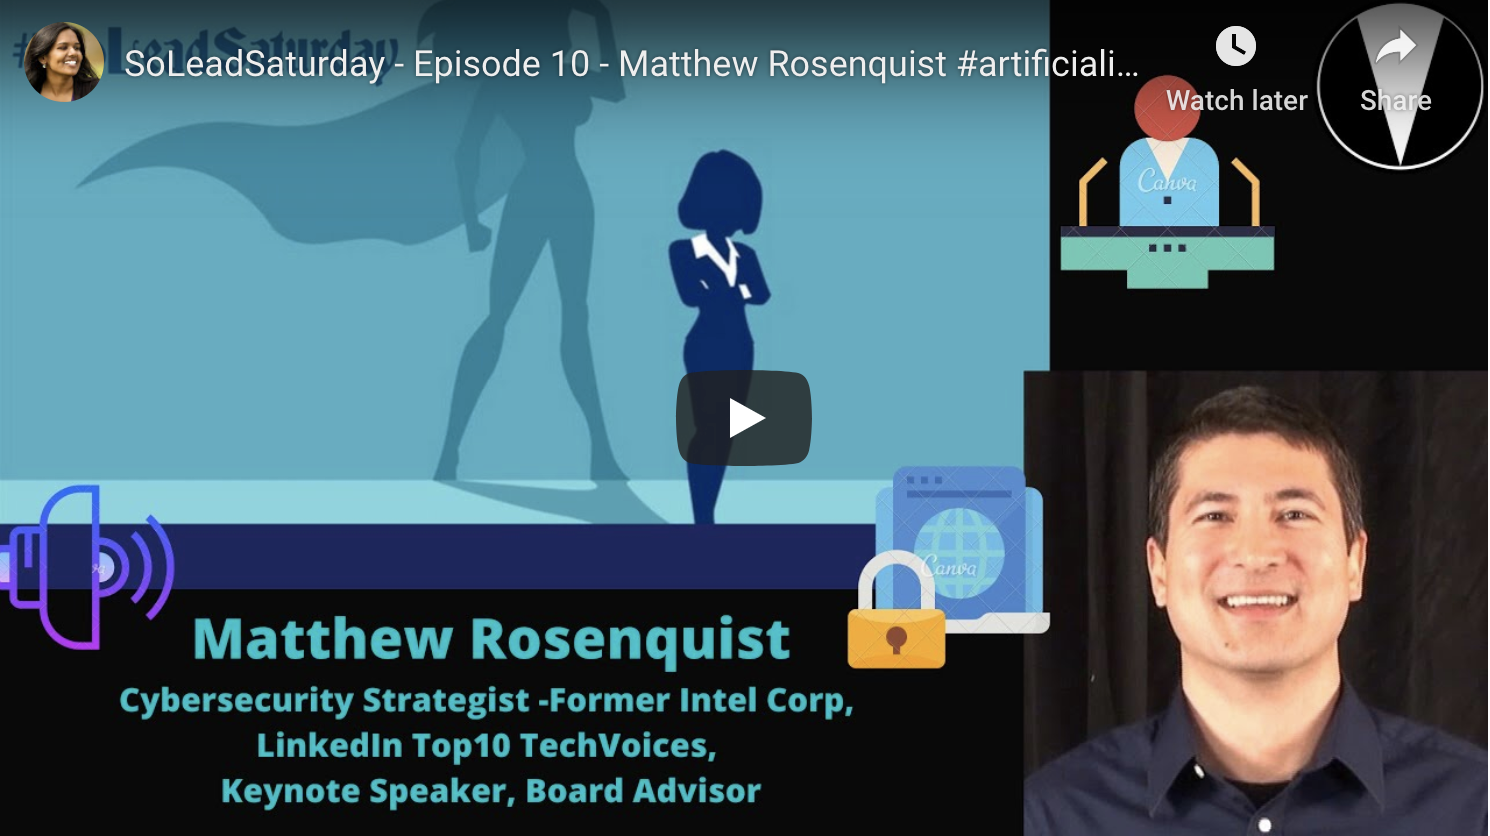 SoLeadSaturday Episode 10 Matthew Rosenquist